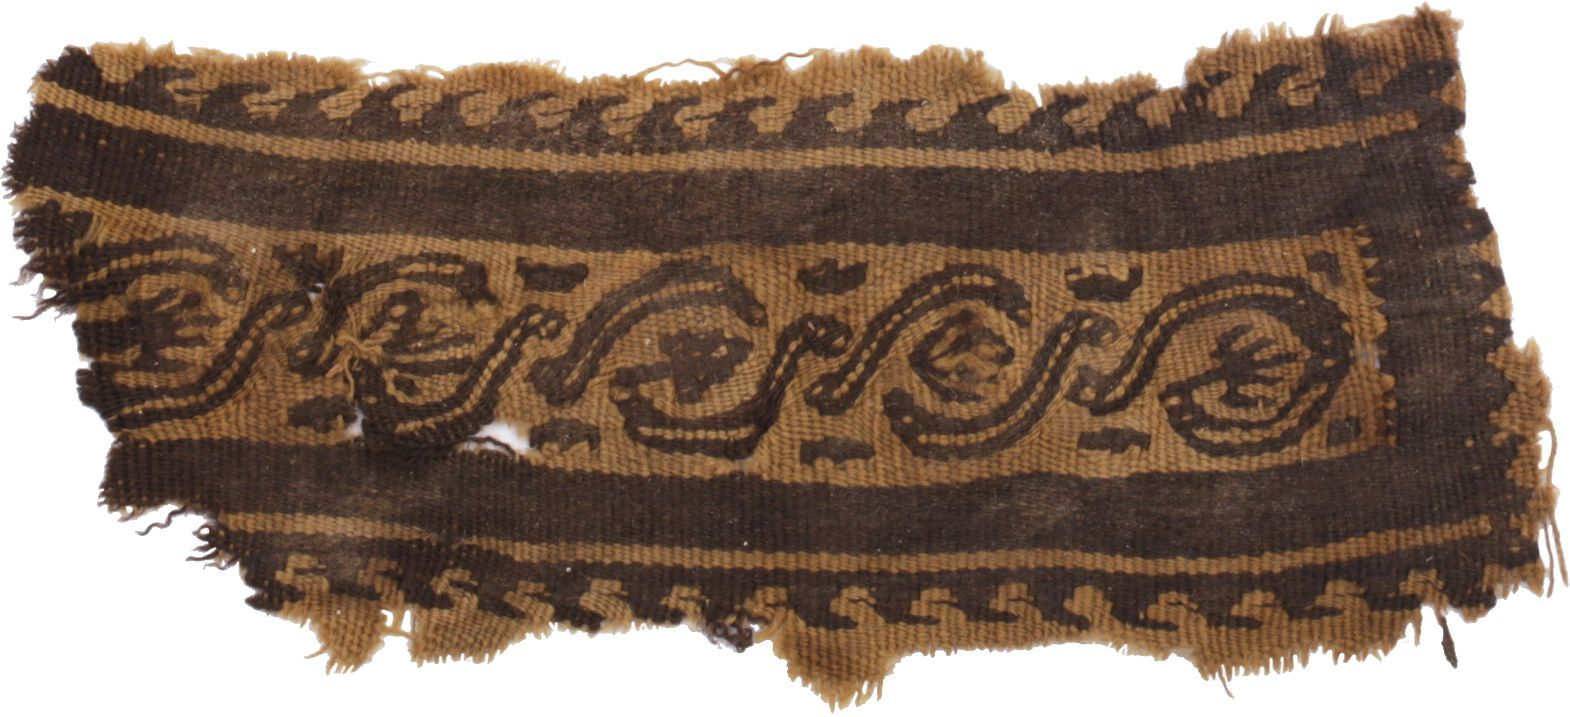 Egyptian Coptic Cloth 4Th-5Th Century Ad - Product